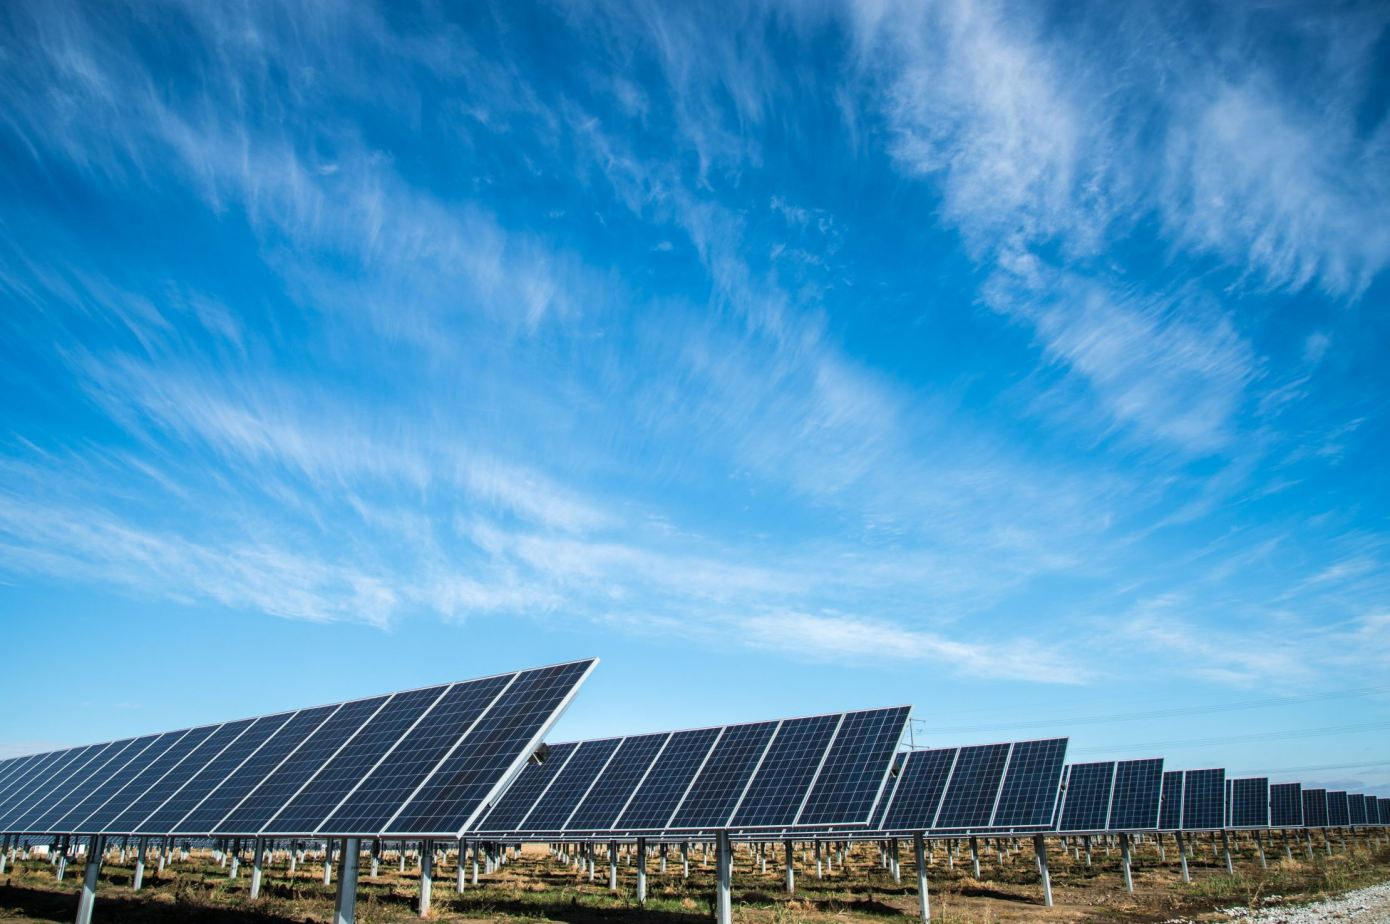 A new solar technology could be the next big boost for renewable energy